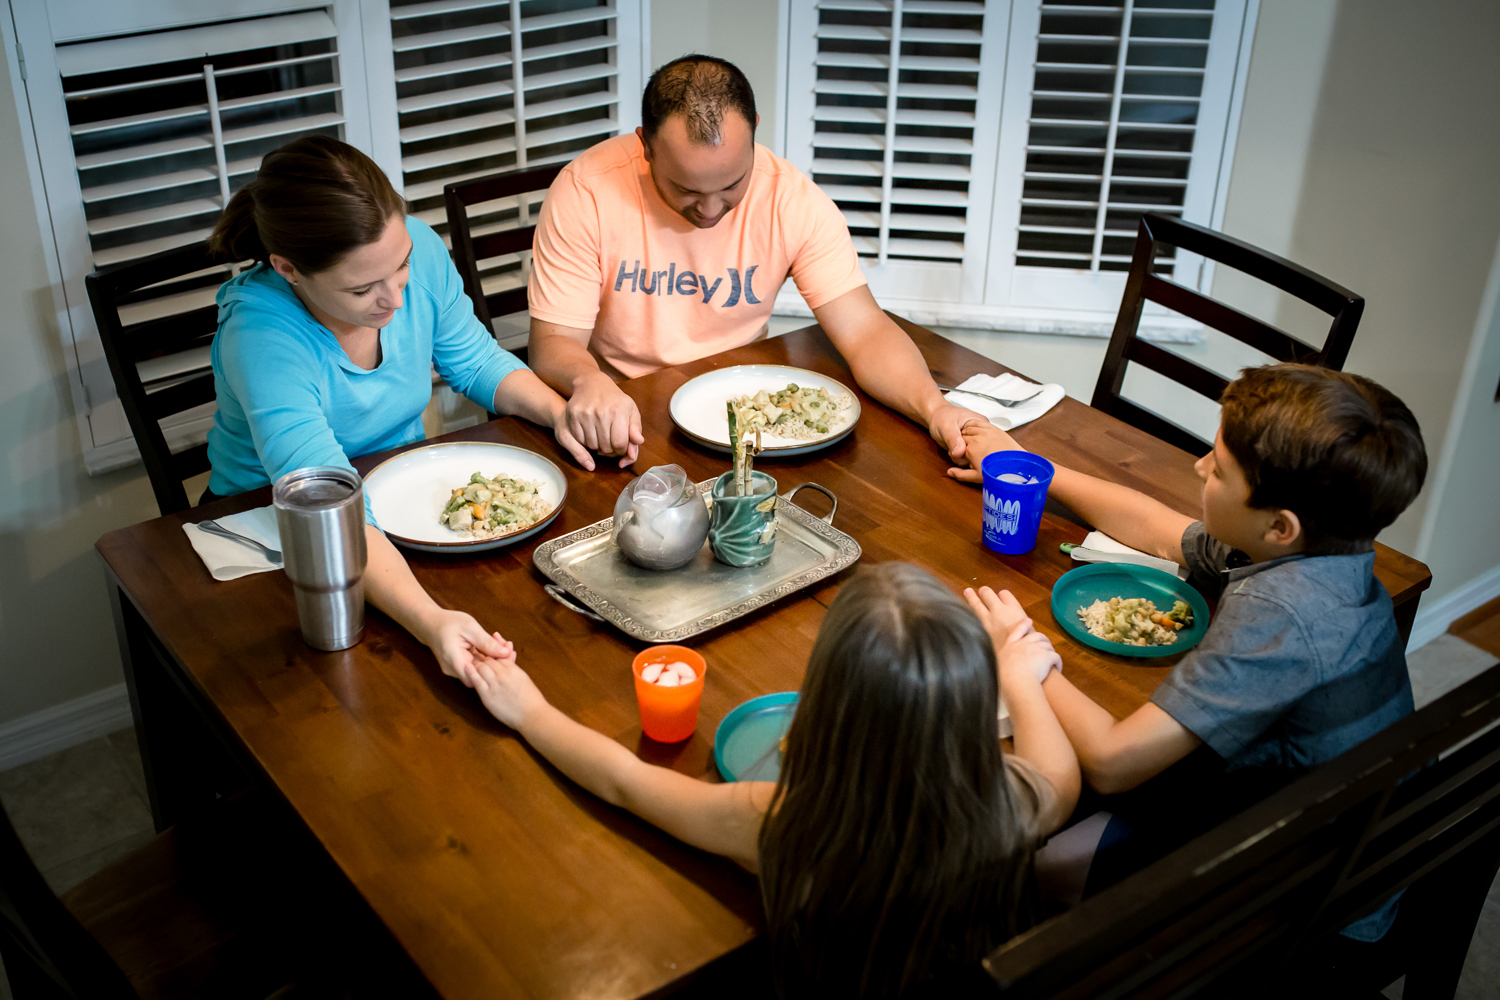 Family says dinner blessing during family photography session in Clermont, Florida.